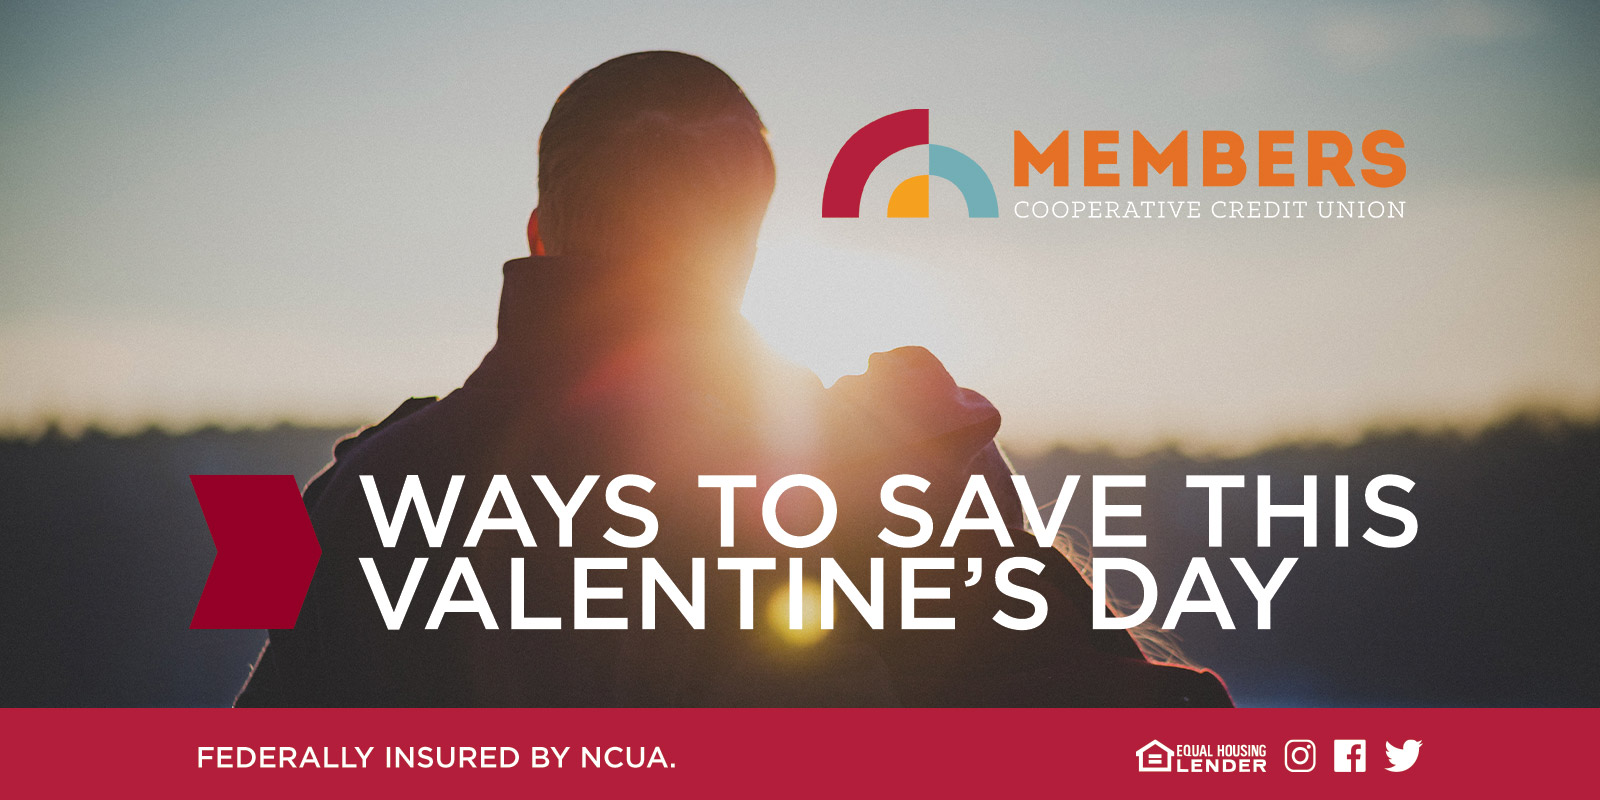 Ways To Save This Valentine's Day